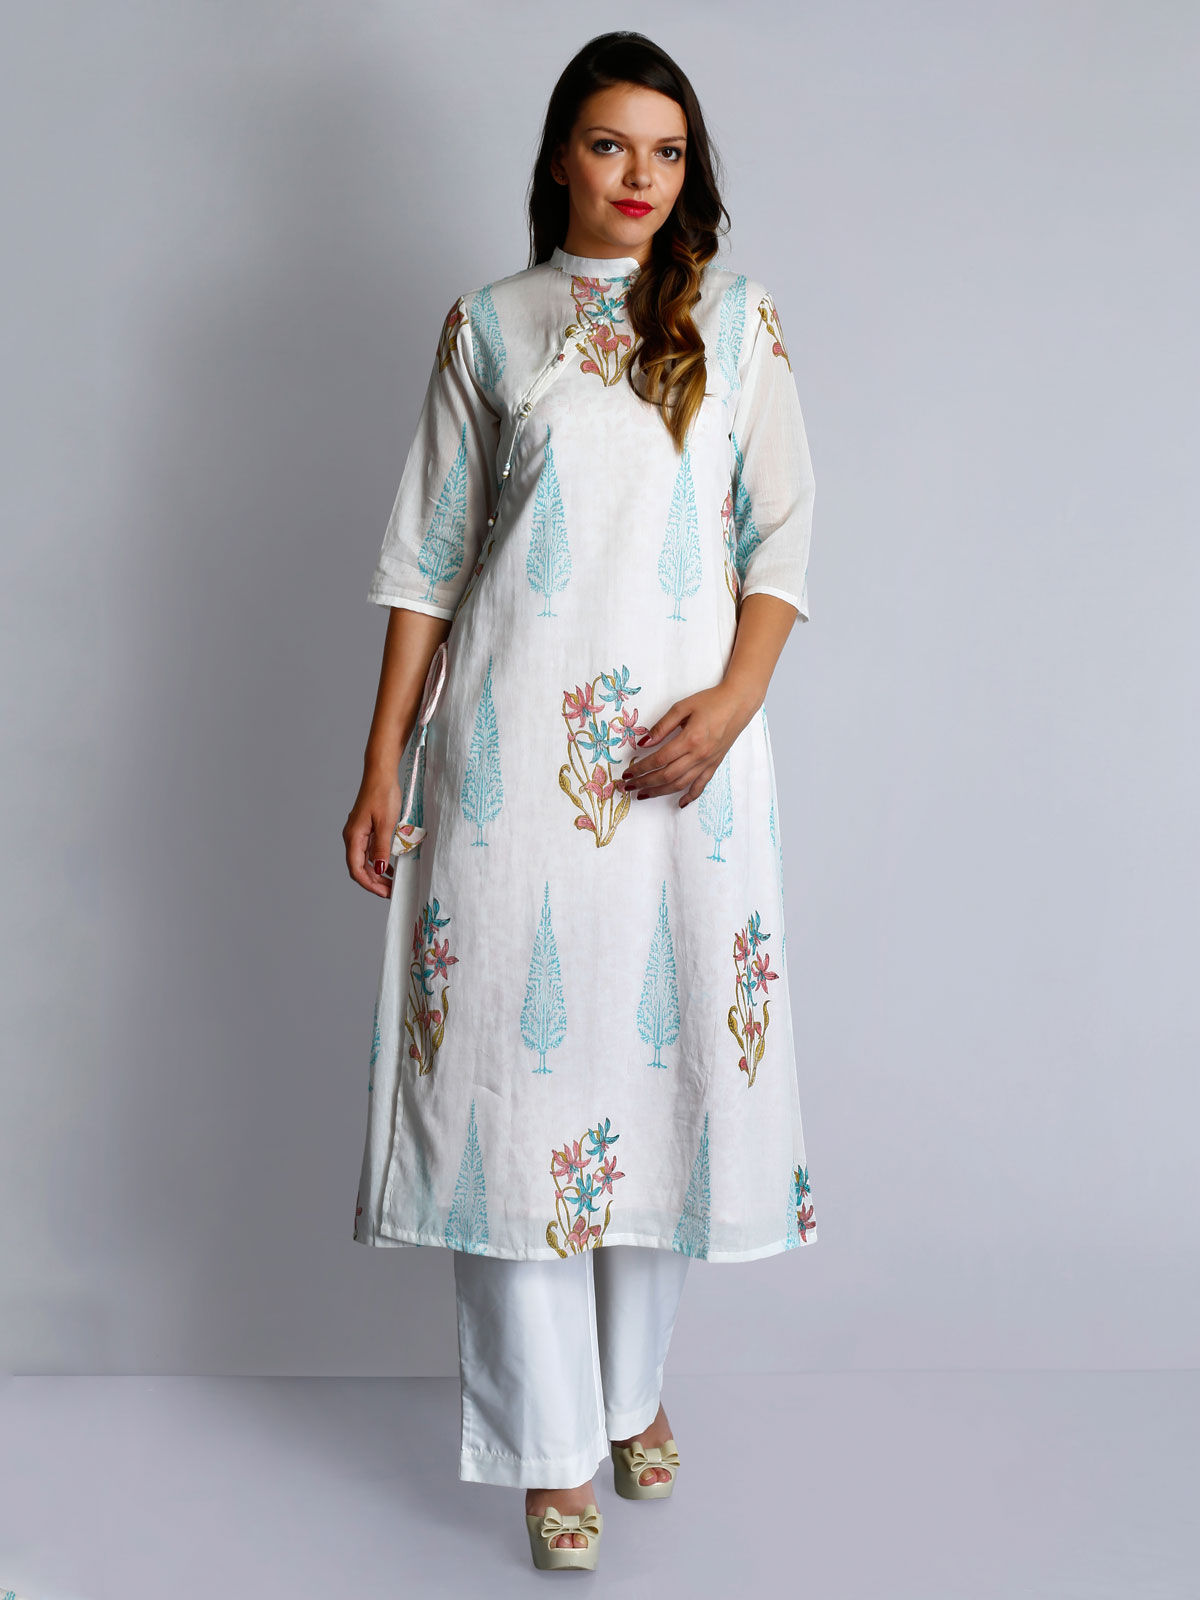 White cotton voile hand block printed layered tunic